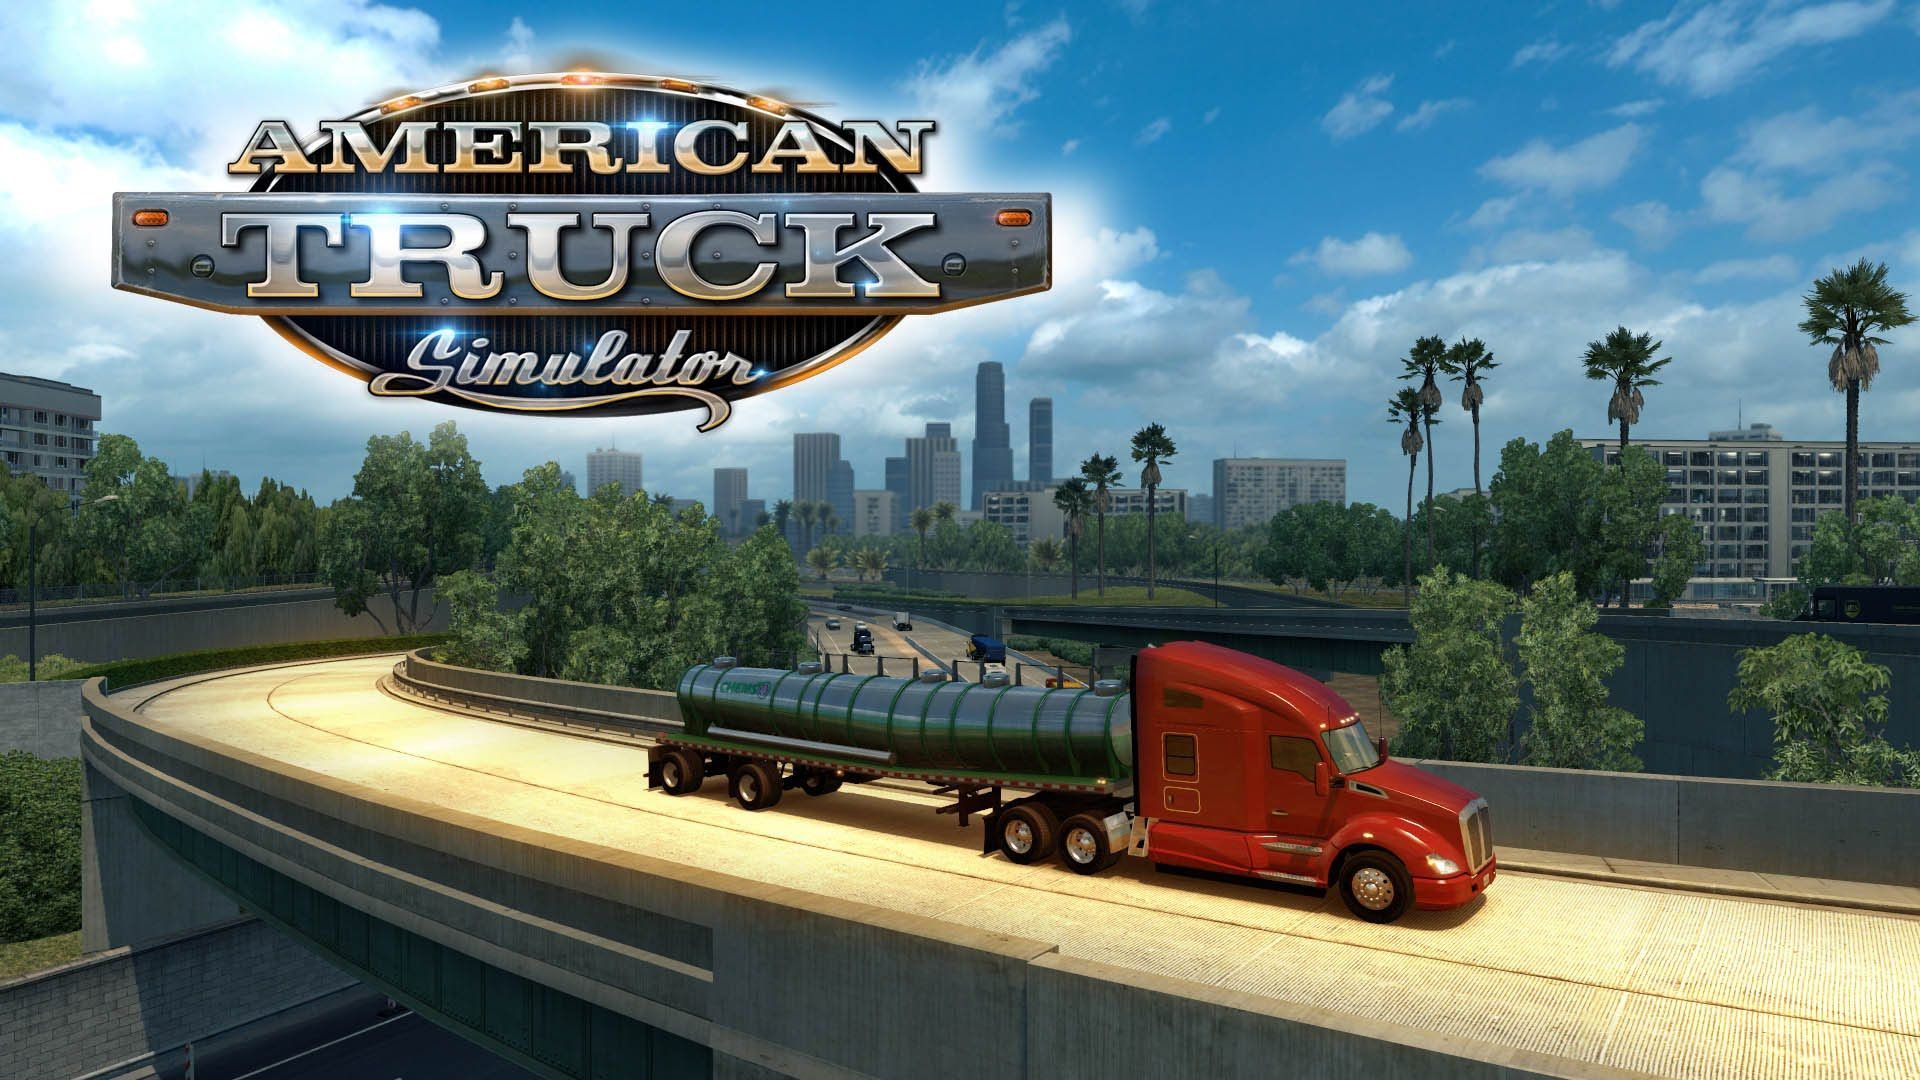 American Truck Simulator Full Version Free Download Pfg